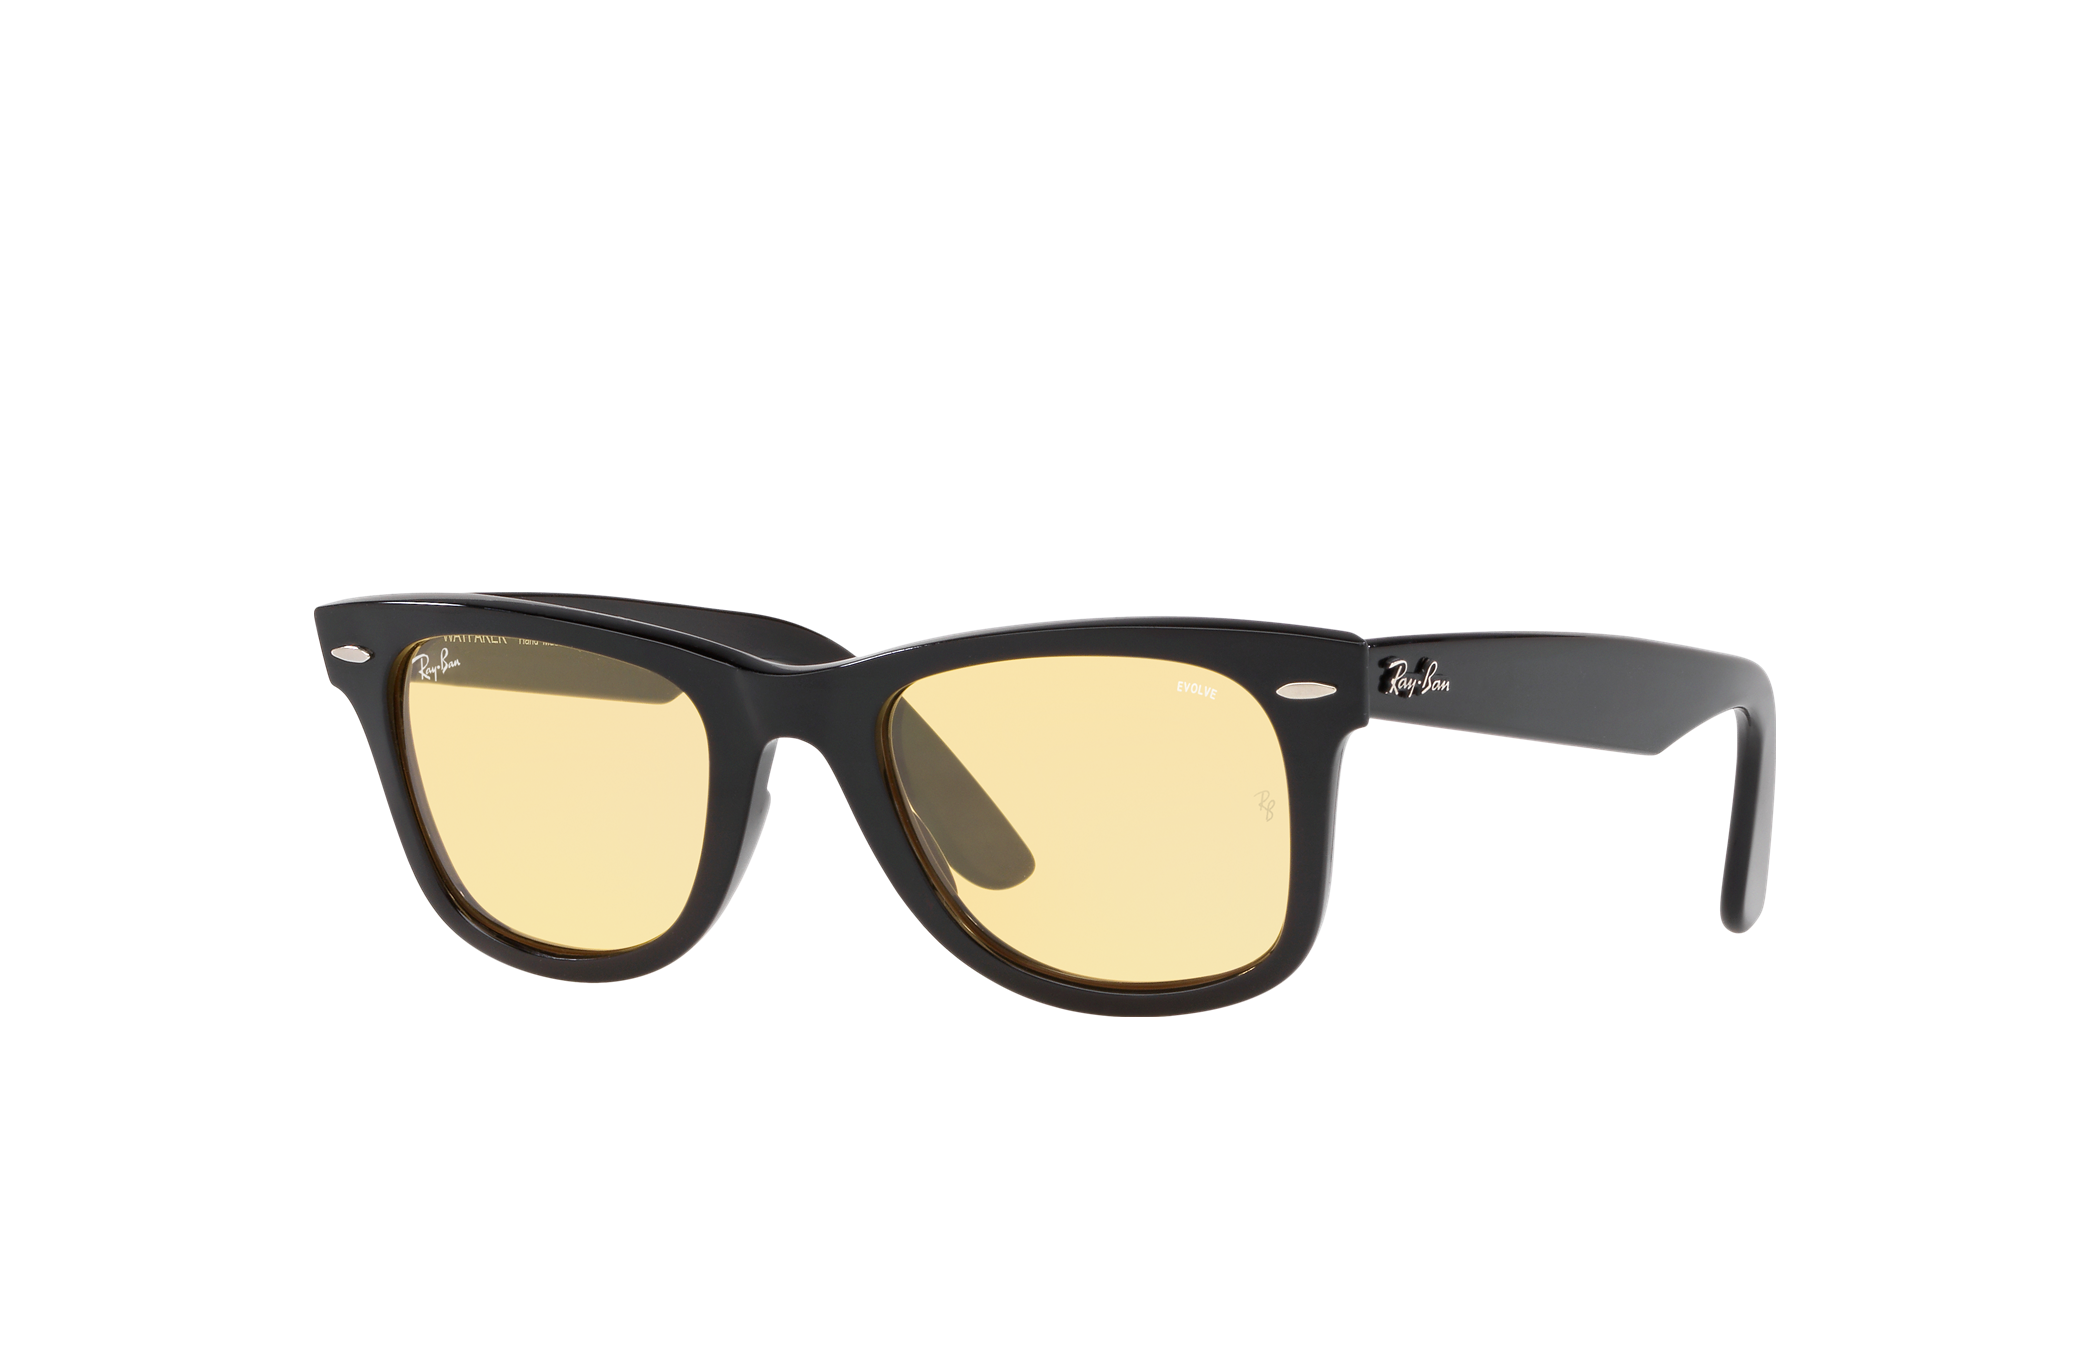 Ray-Ban Wayfarer Washed Evolve - Exclusive Edition Black, Yellow Lenses - RB2140